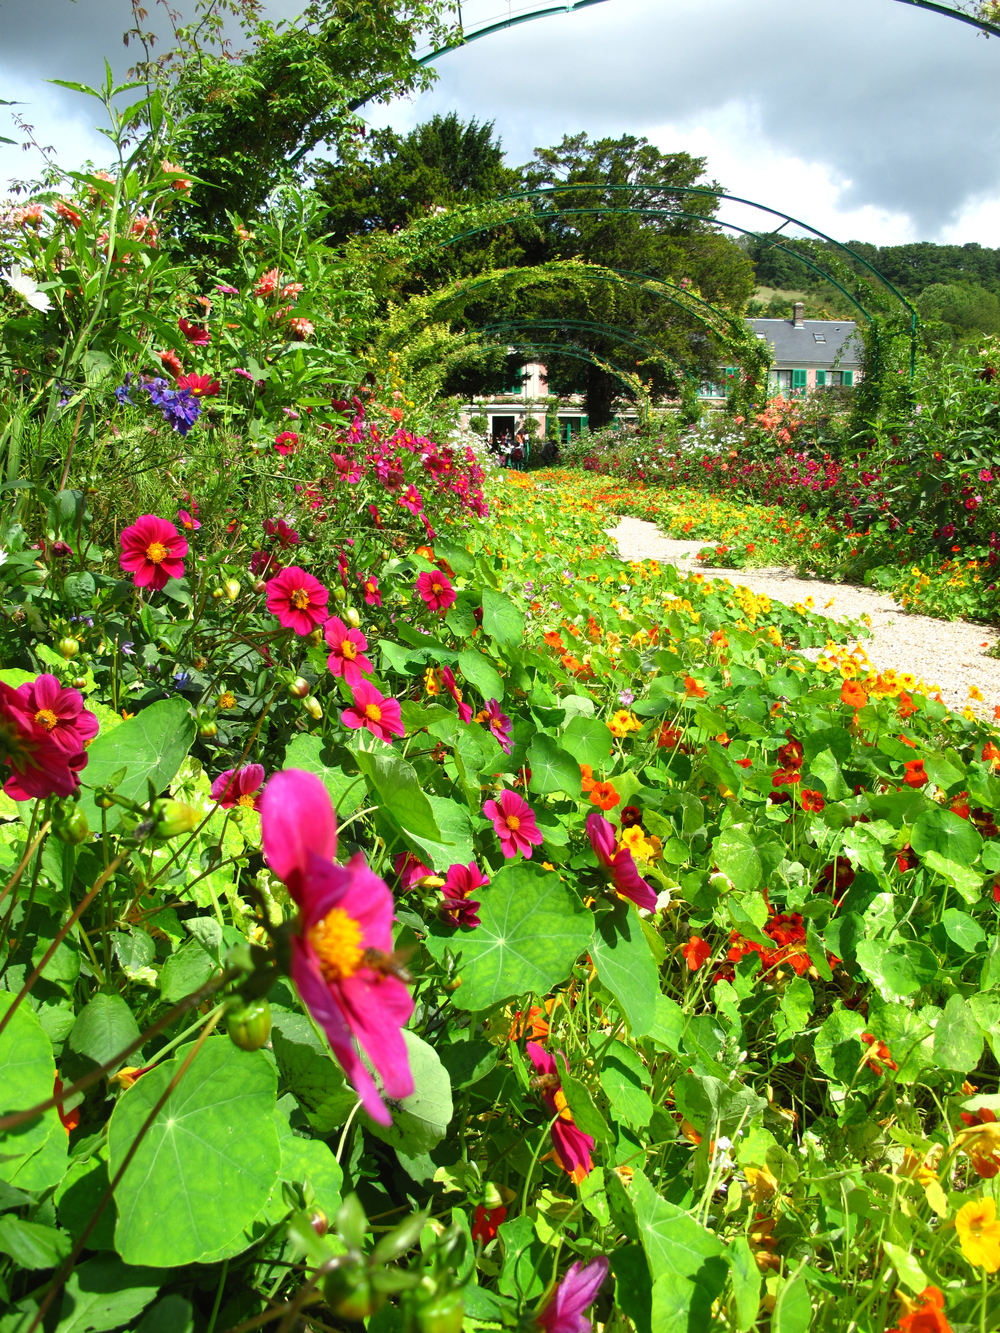 Giverny gardens in summer - red, pink, and orange flowers.